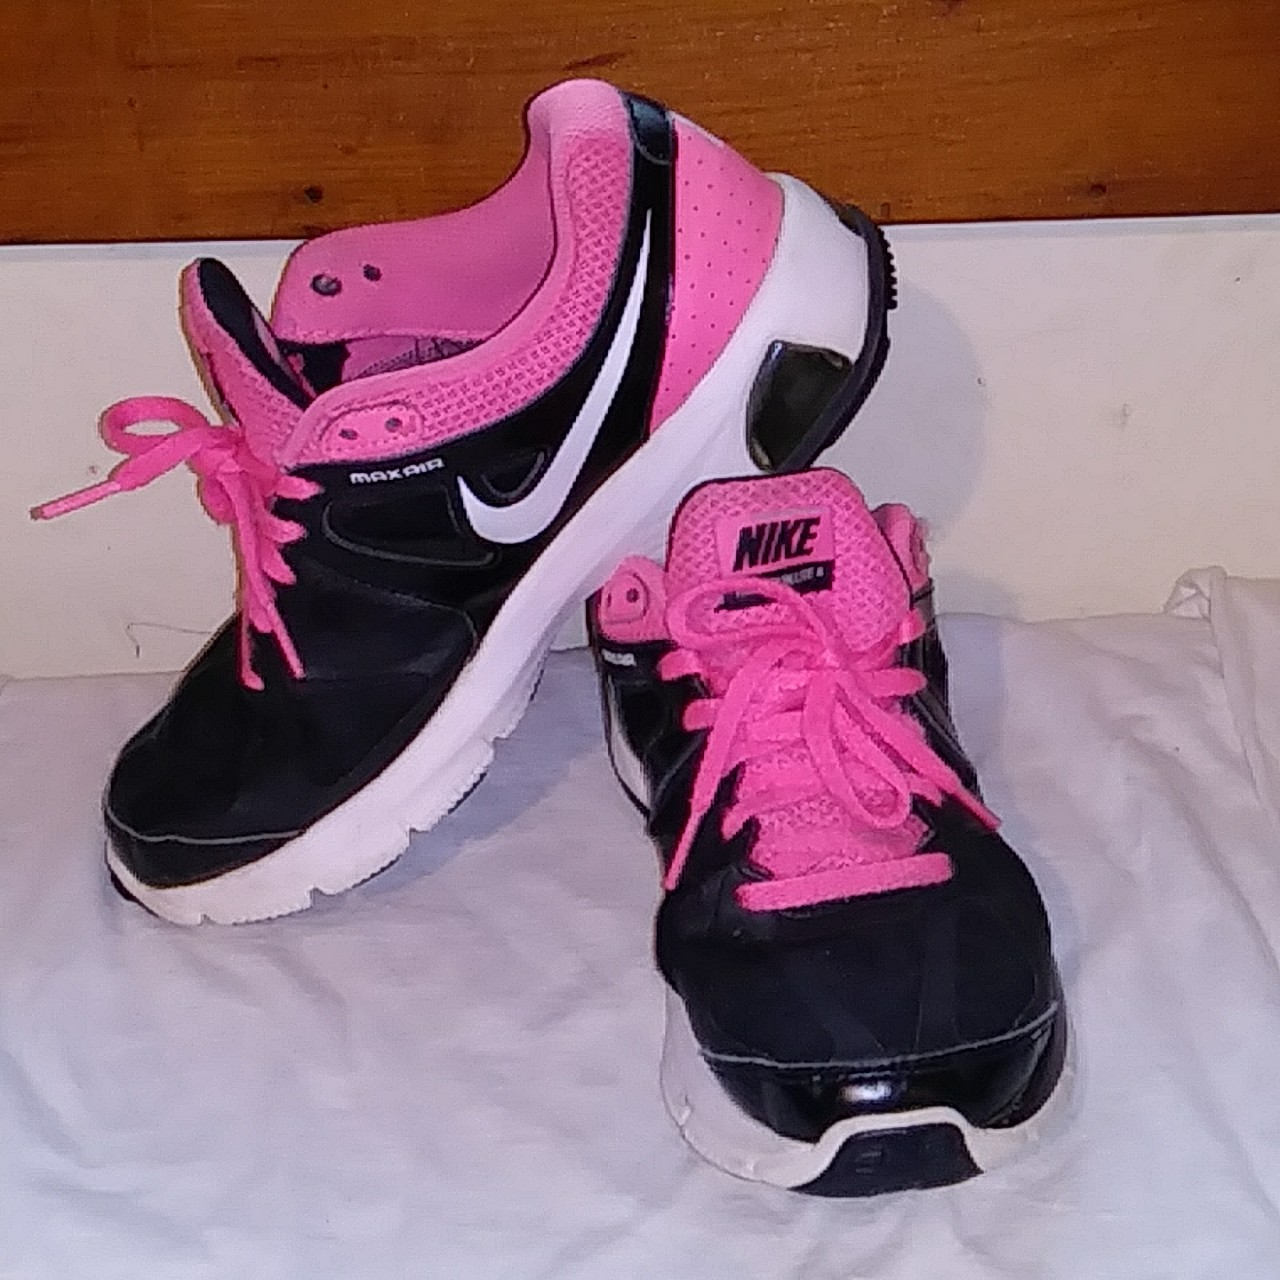 Women's 2012 Nike Air Max Run Lite 4 Running Shoes, Depop